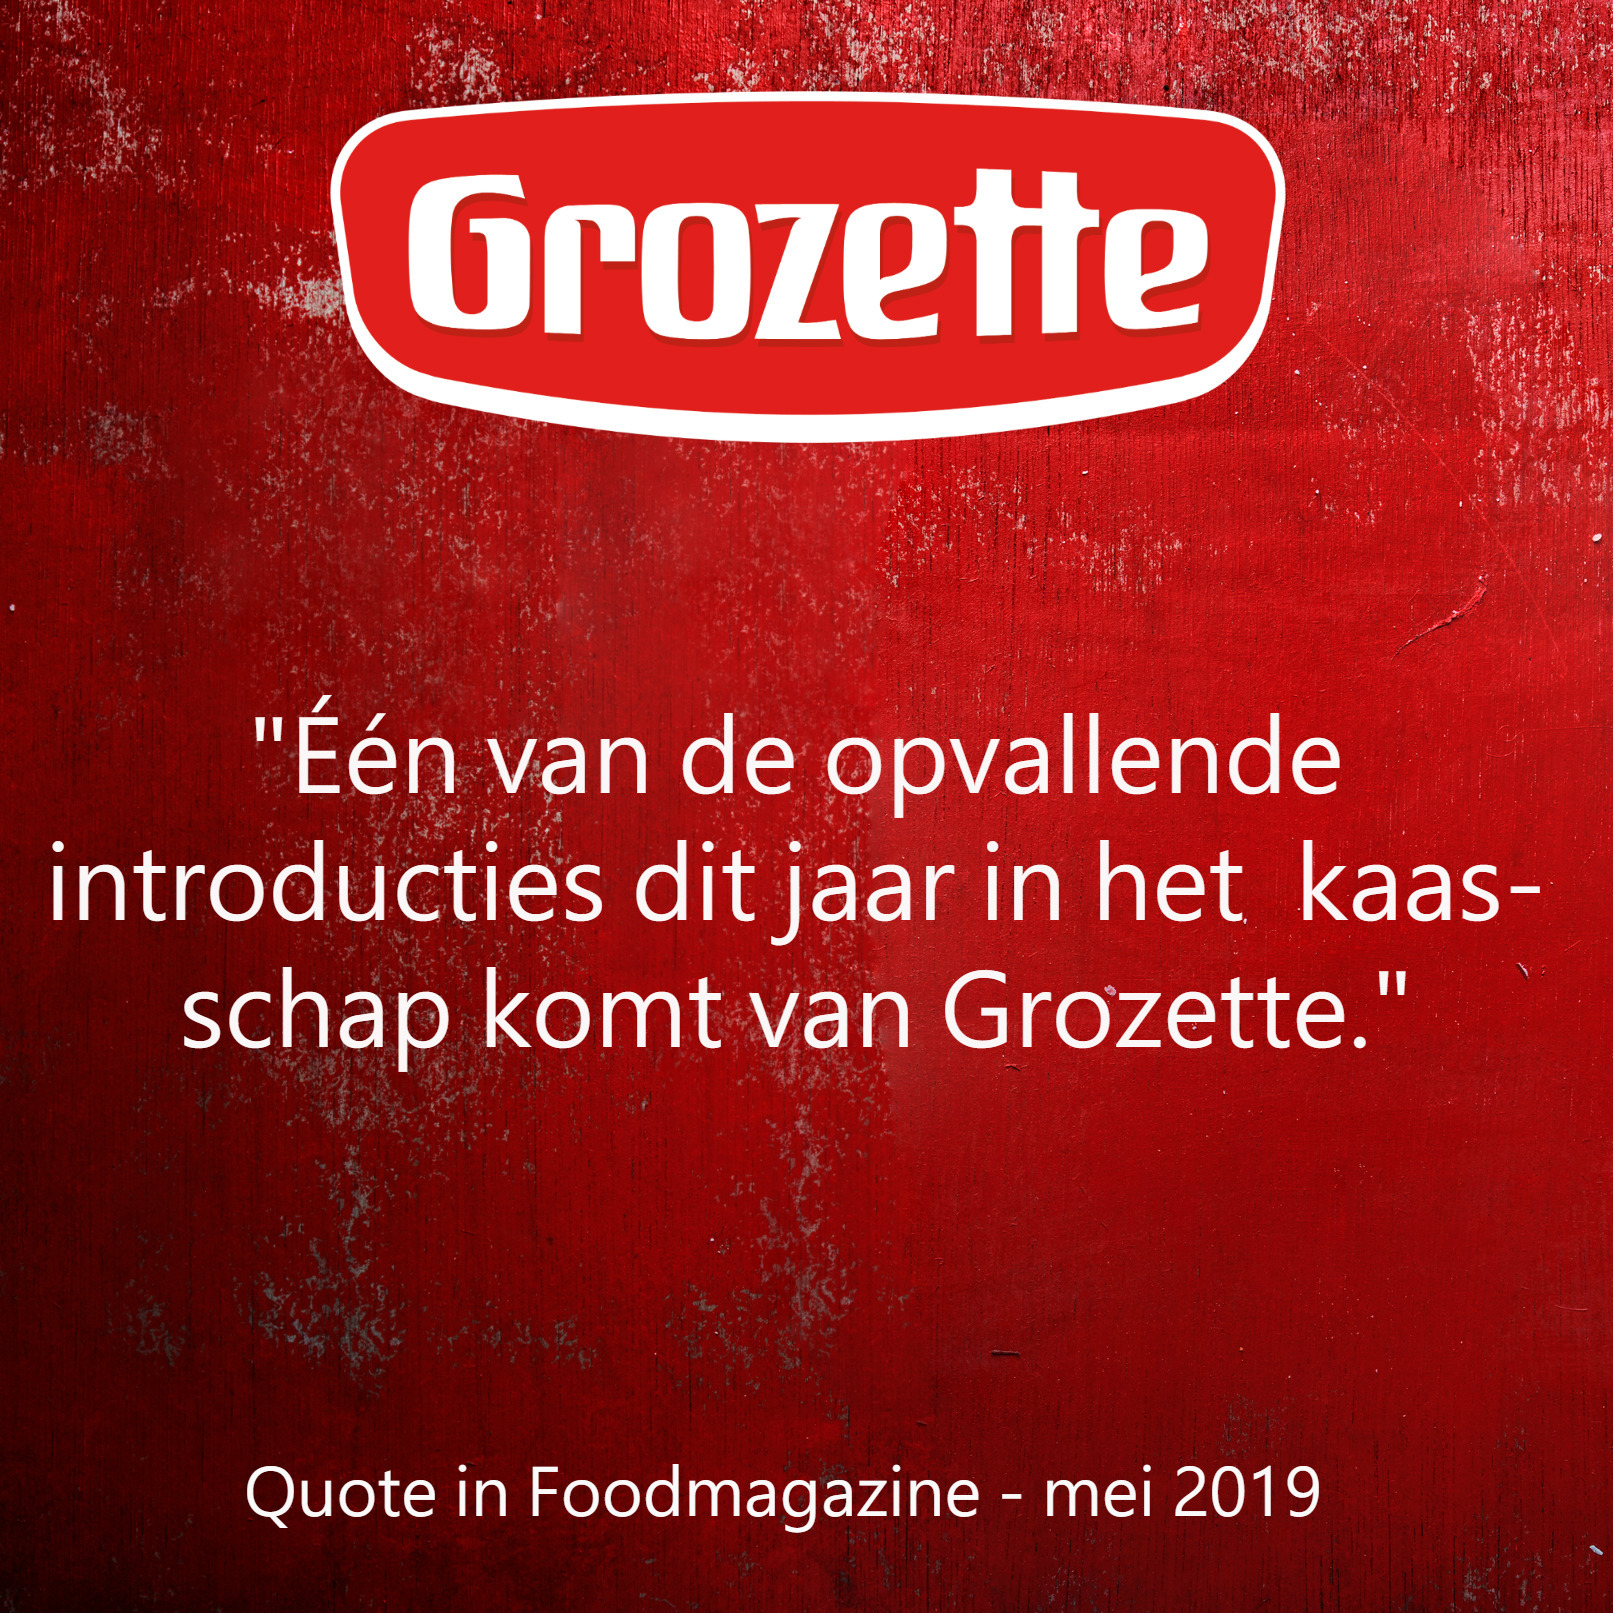 Grozette LinkedIN quote foodmagazine mei 2019